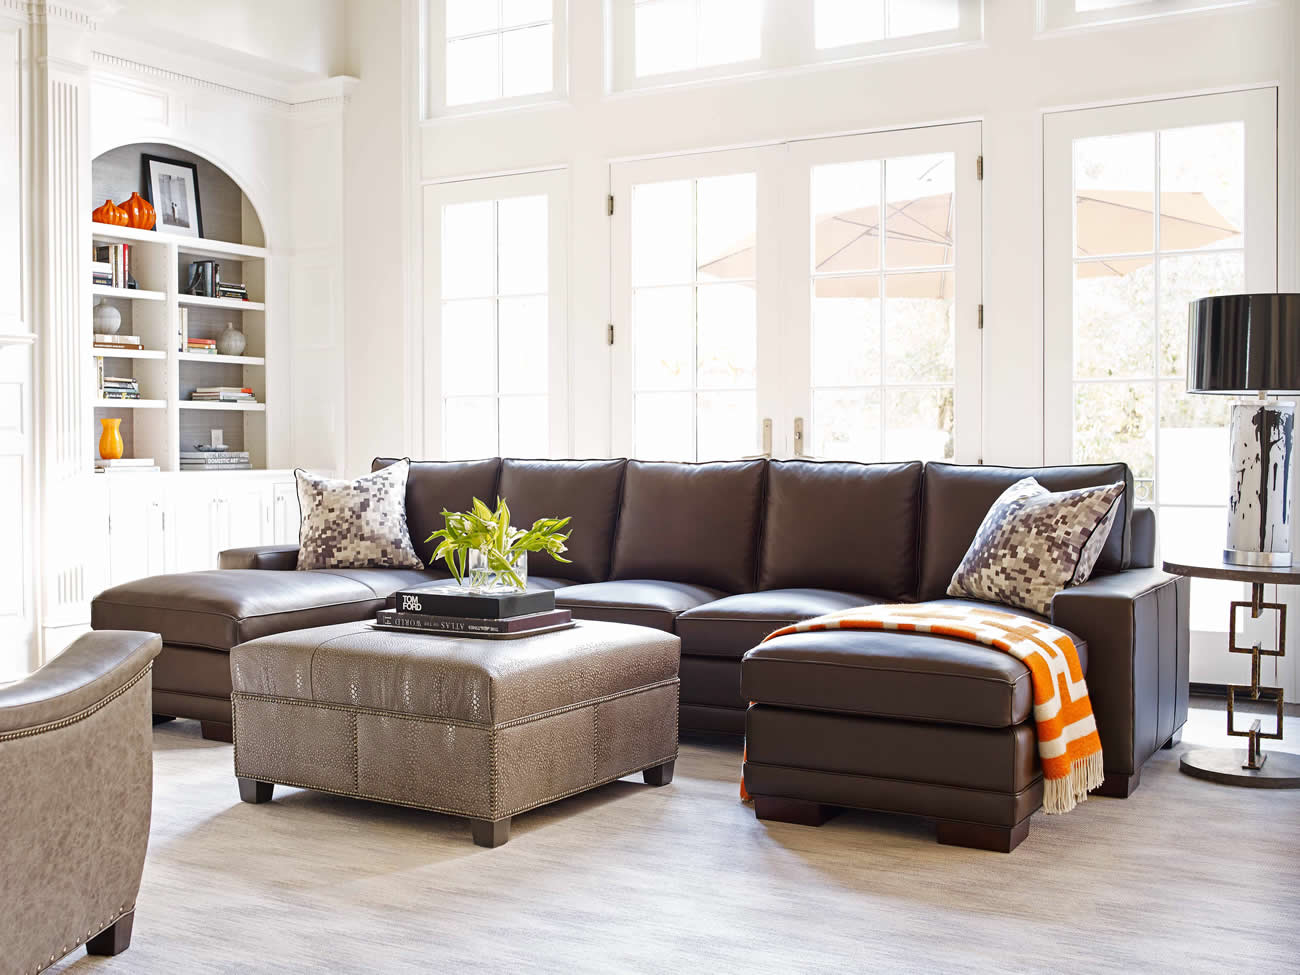 Leather Furniture And Decor Cabot House Furniture And Design